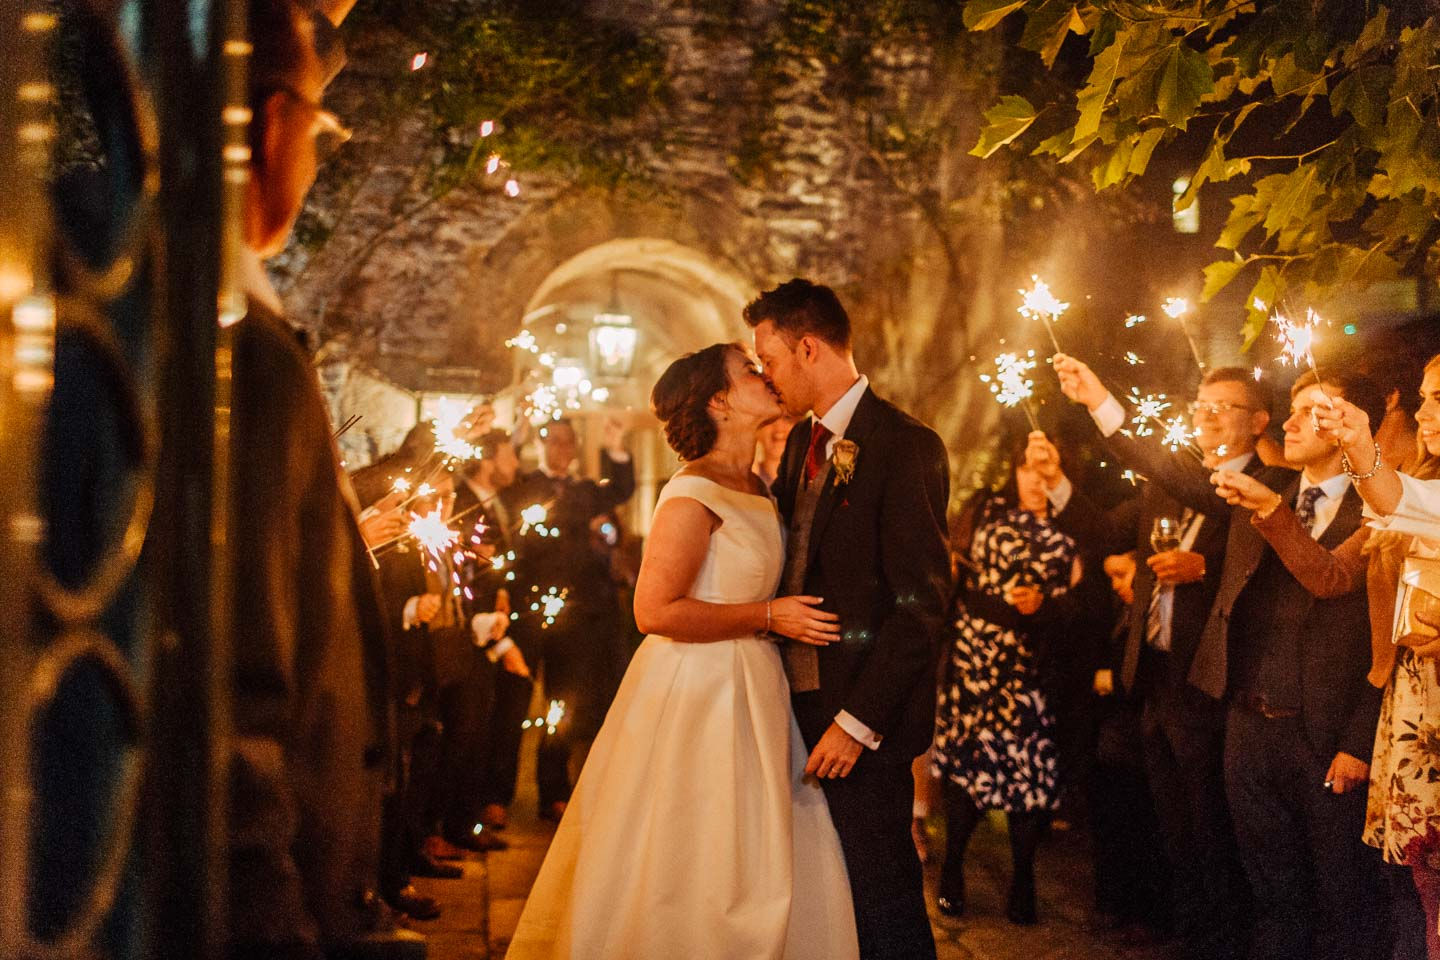 Another sparkler shot – Canon 35L, Canon 1Ds Mark II this time (old beast!), 1/320th, f1.4, ISO 3200 (H)